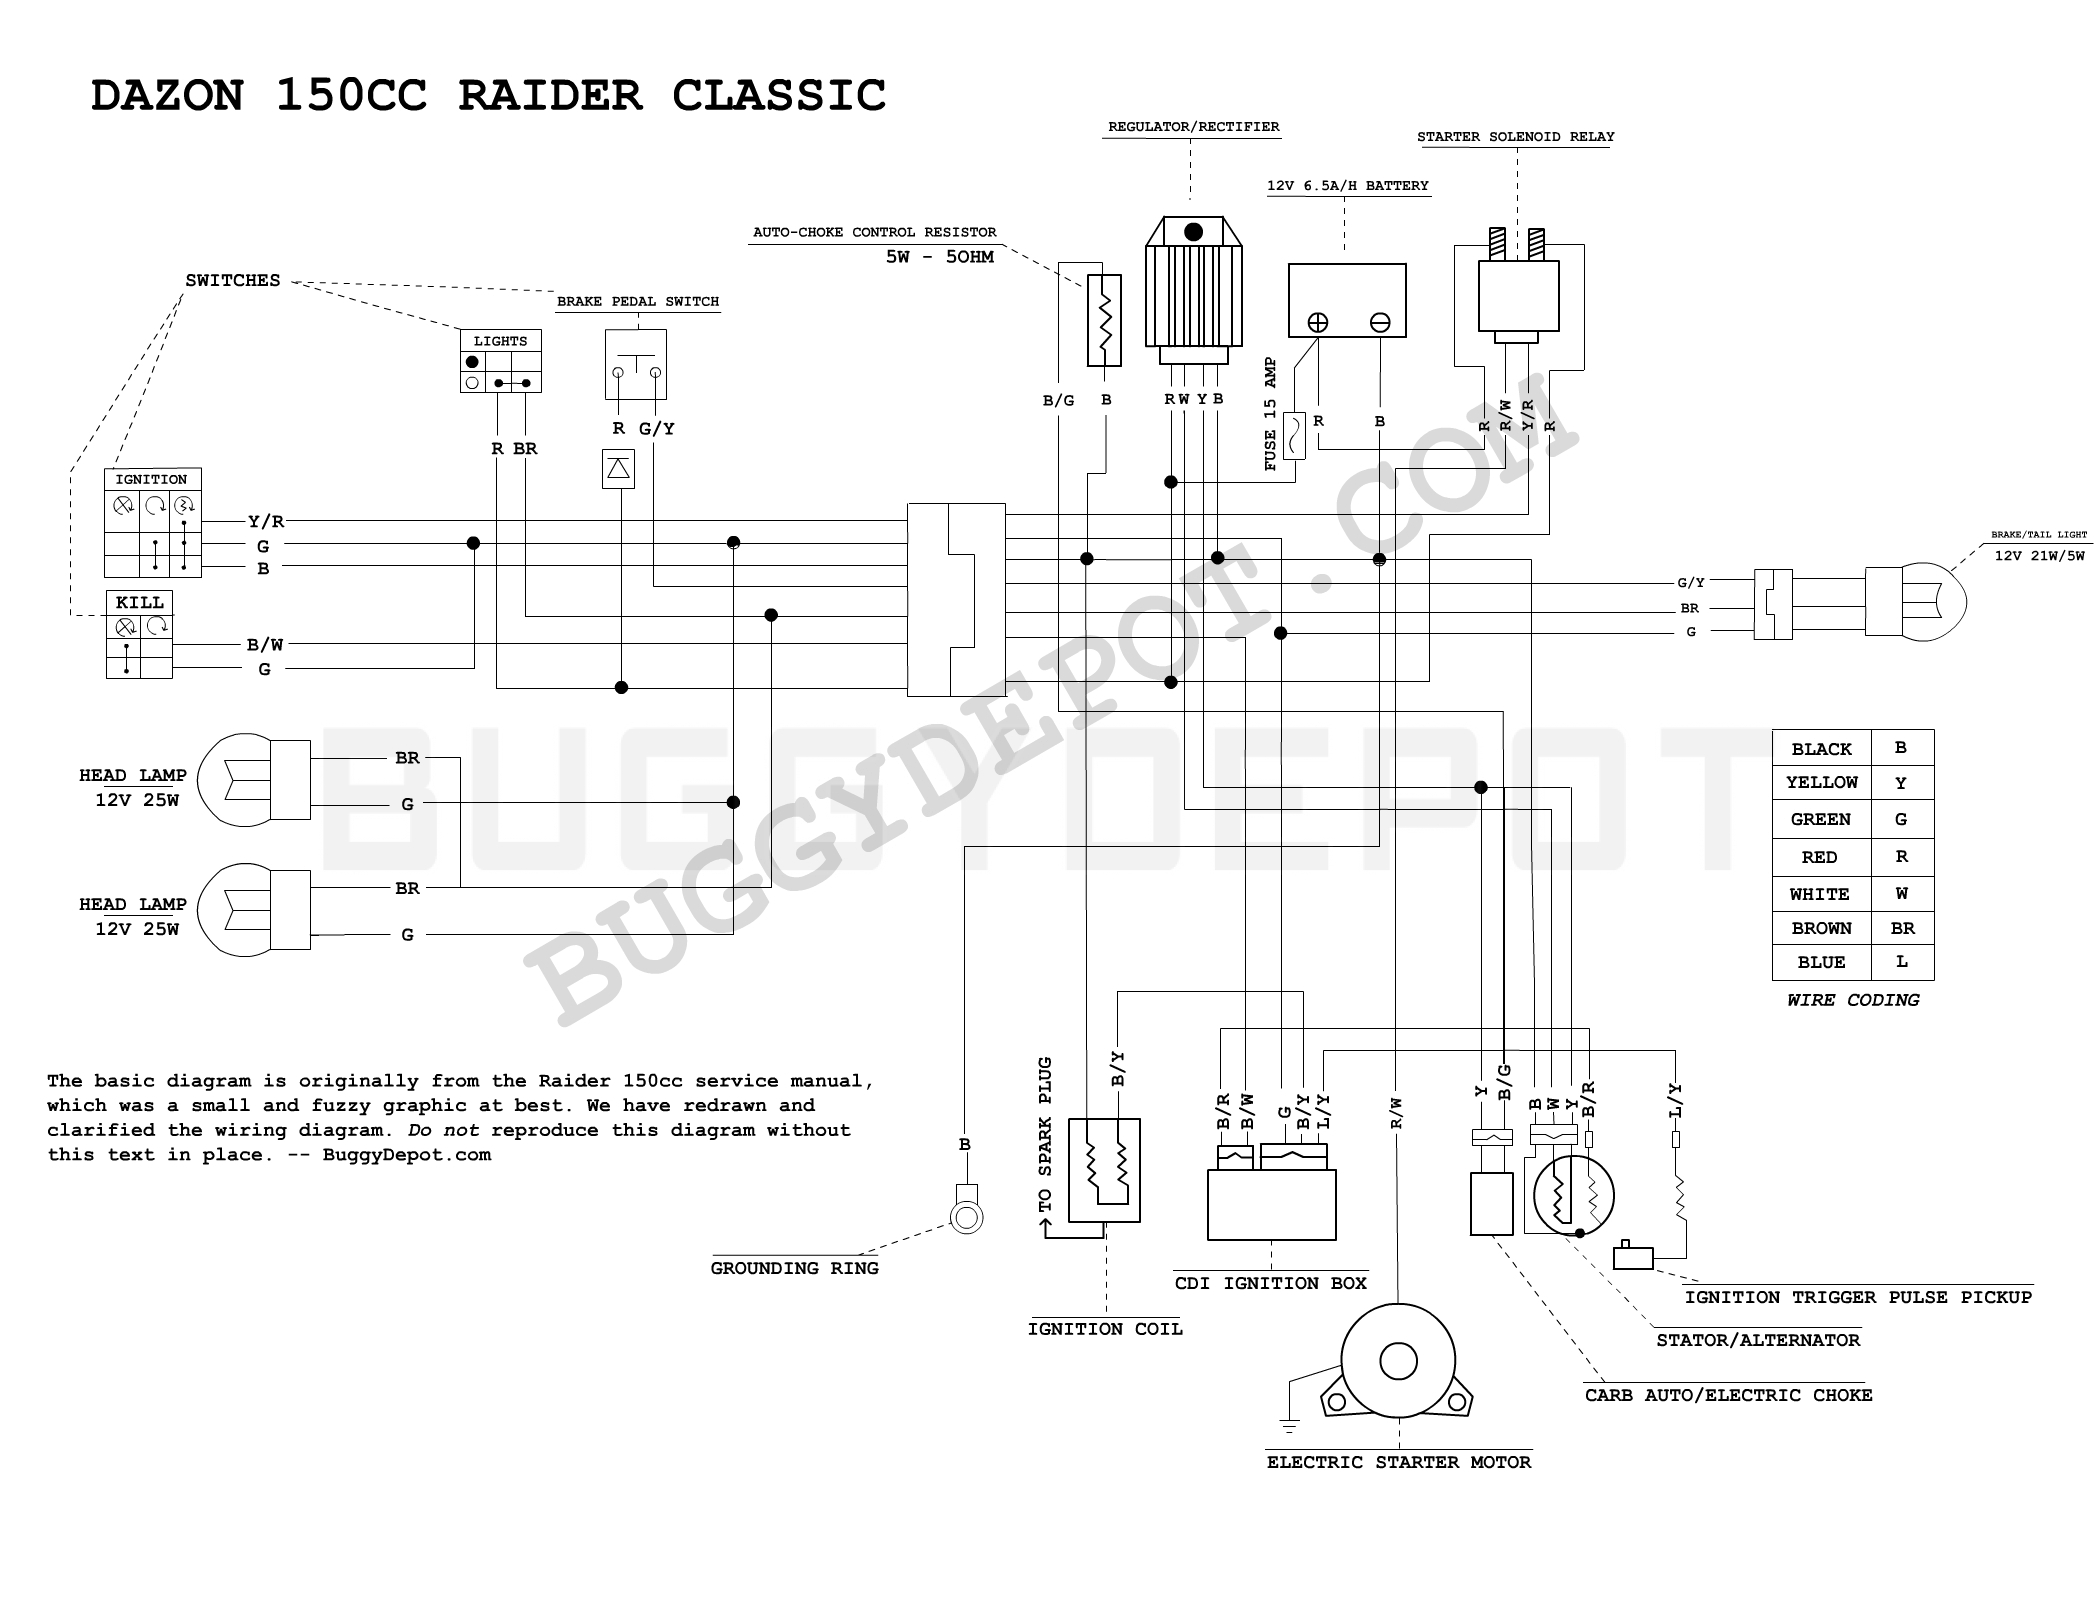 article_33_1278205207 gy6 150cc ignition troubleshooting guide no spark? buggy depot gy6 wiring harness diagram at bayanpartner.co